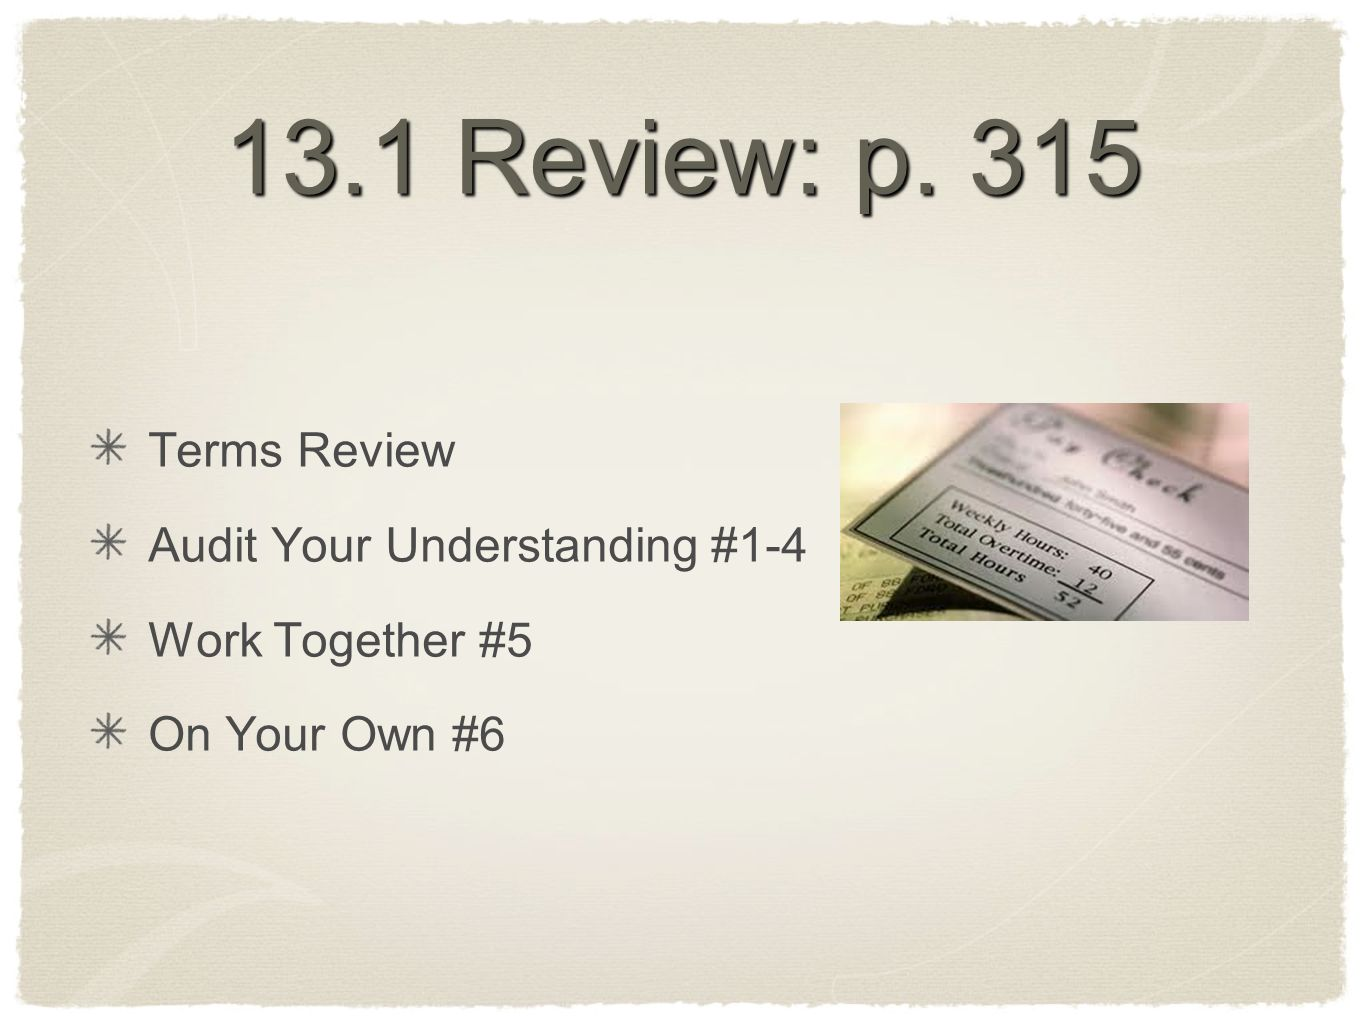 13.1 Review: p. 315 Terms Review Audit Your Understanding #1-4